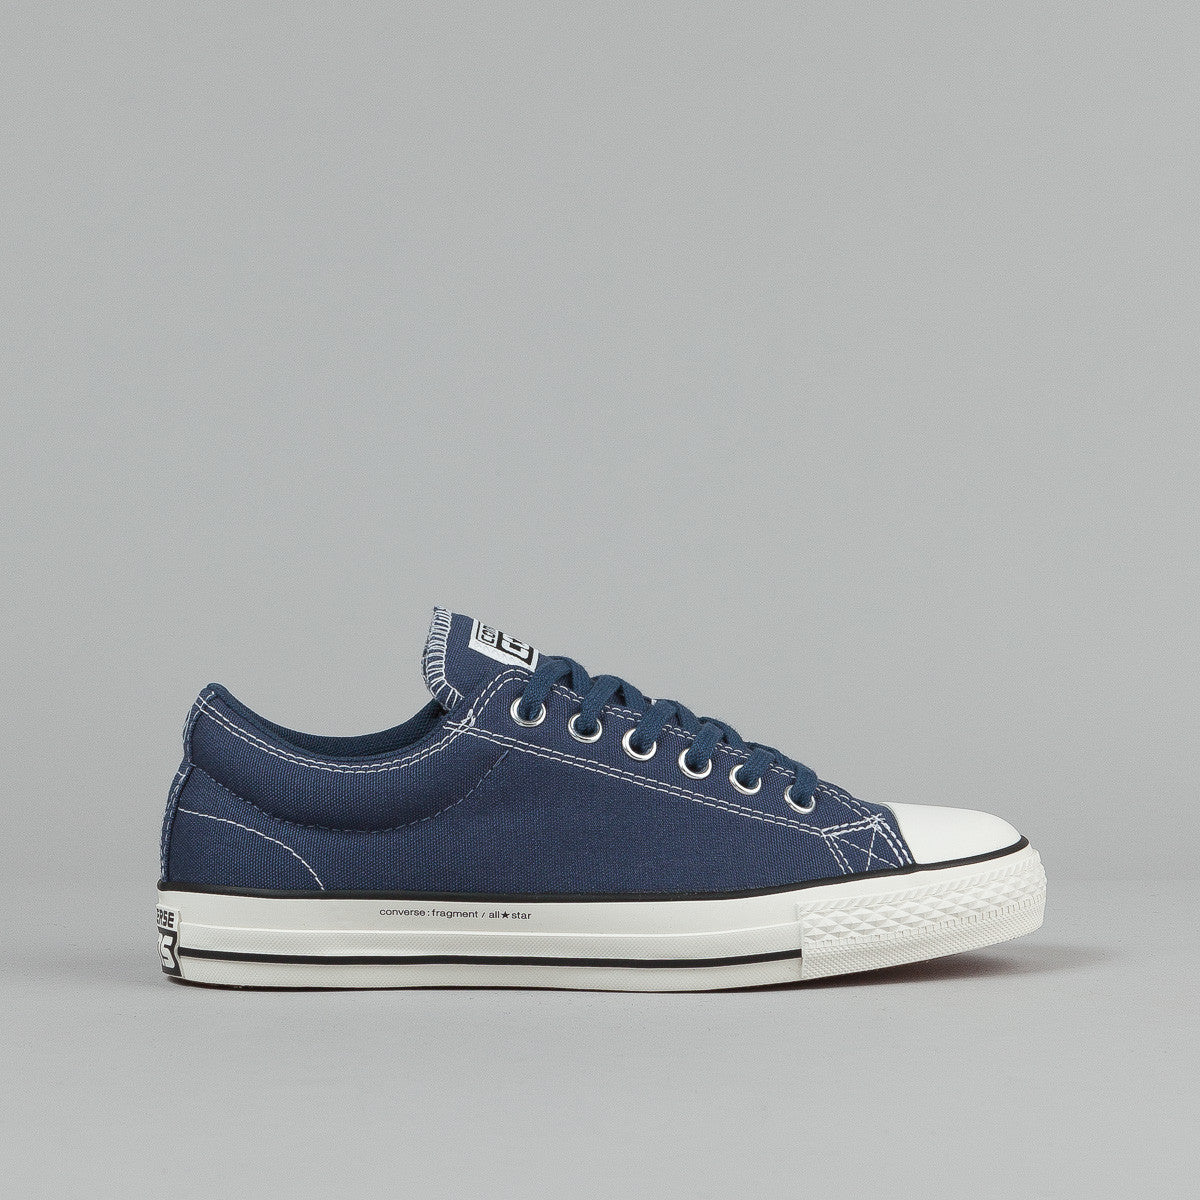 Converse X Fragment CTS OX Shoes